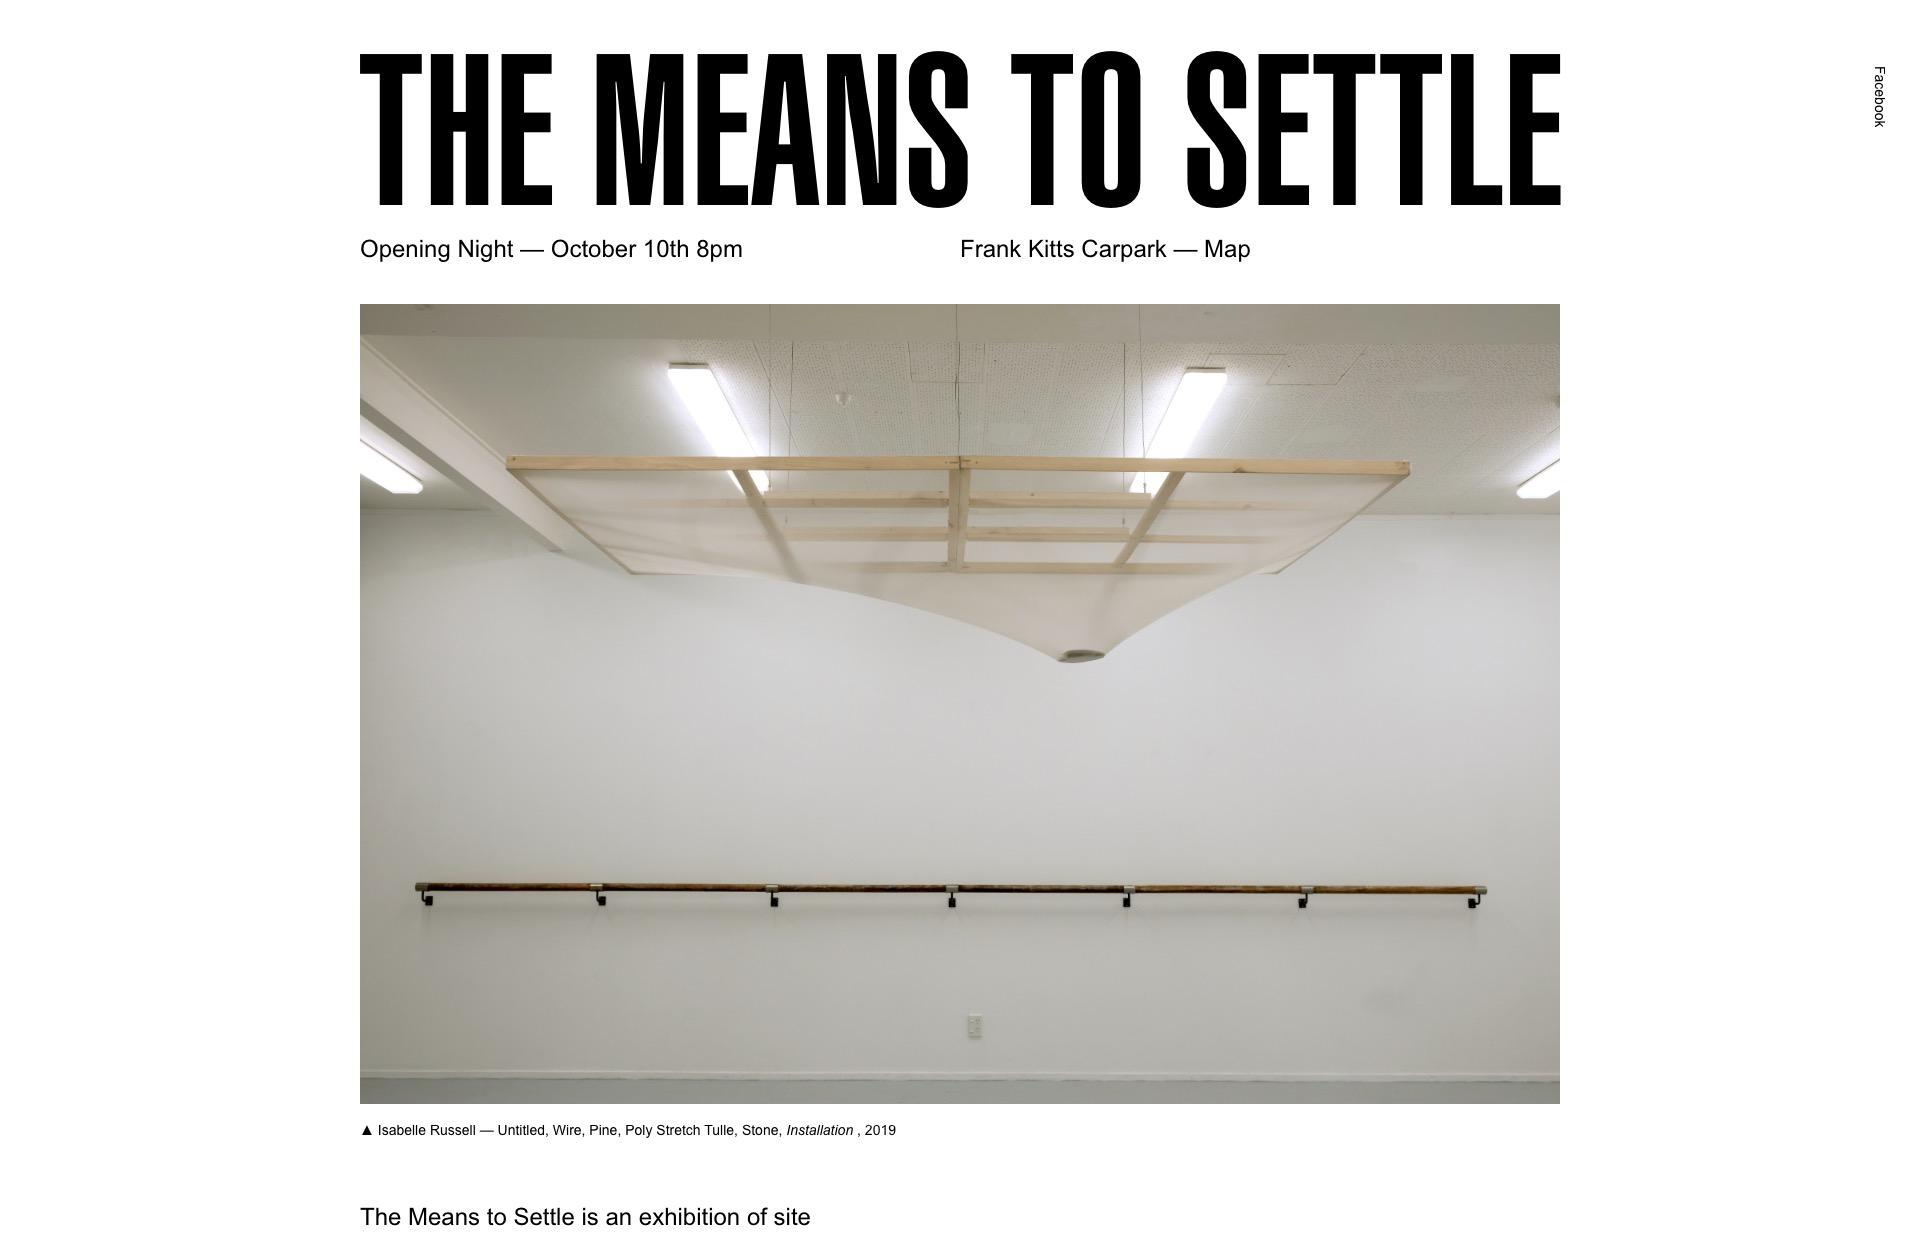 Screenshot of the website The Means To Settle, featured on The Gallery, a curated collection of minimal websites